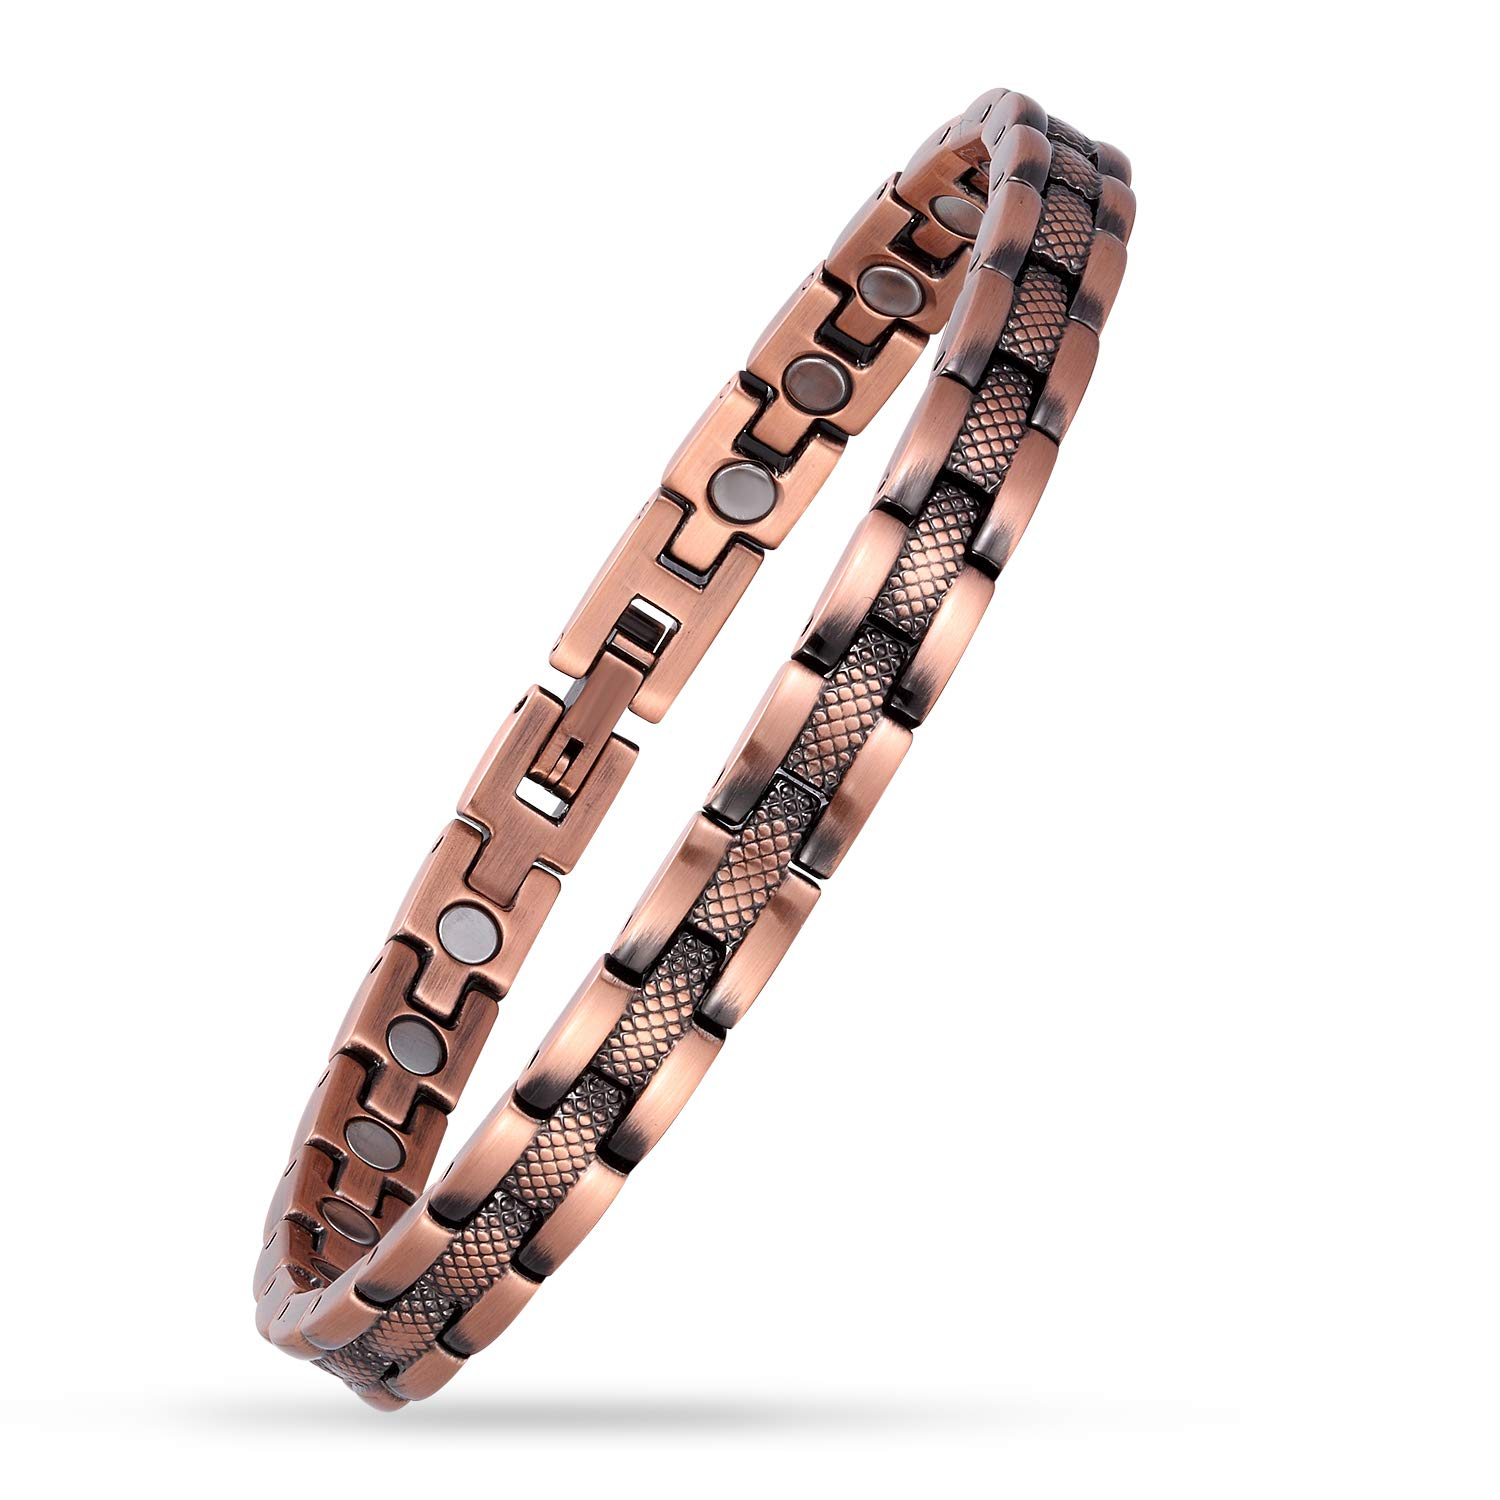 USWEL Copper Bracelet for Women Magnetic Therapy Pain Relieving Bracelet for Arthritis and Carpal Tunnel Adjustable (6.5''-8.5'')